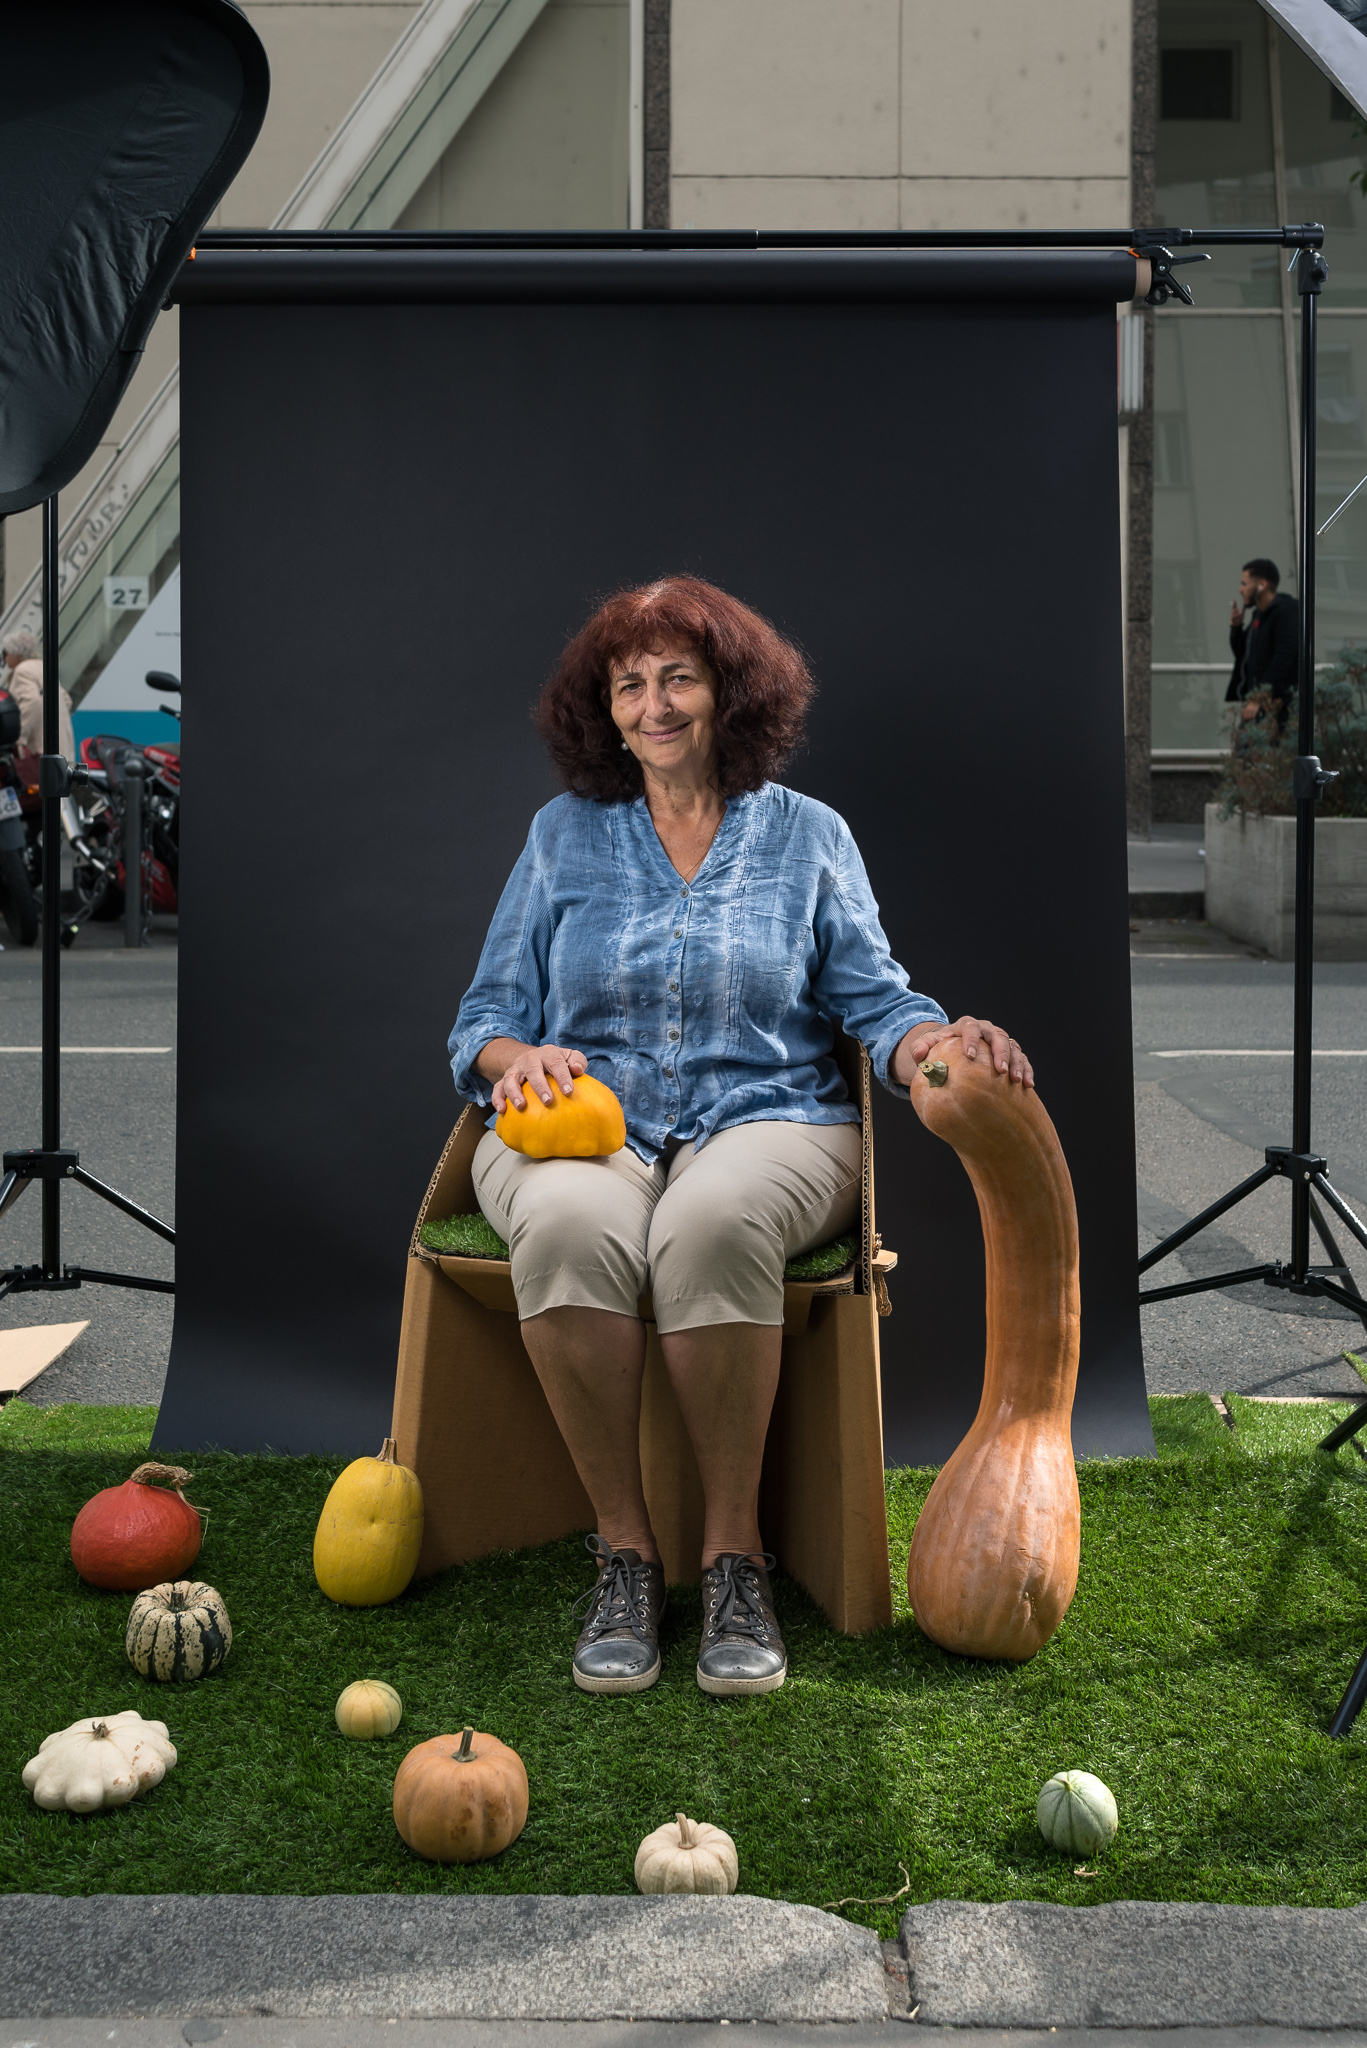 Photographe Professionnel Lyon Villeurbanne - parking day evenement portrait